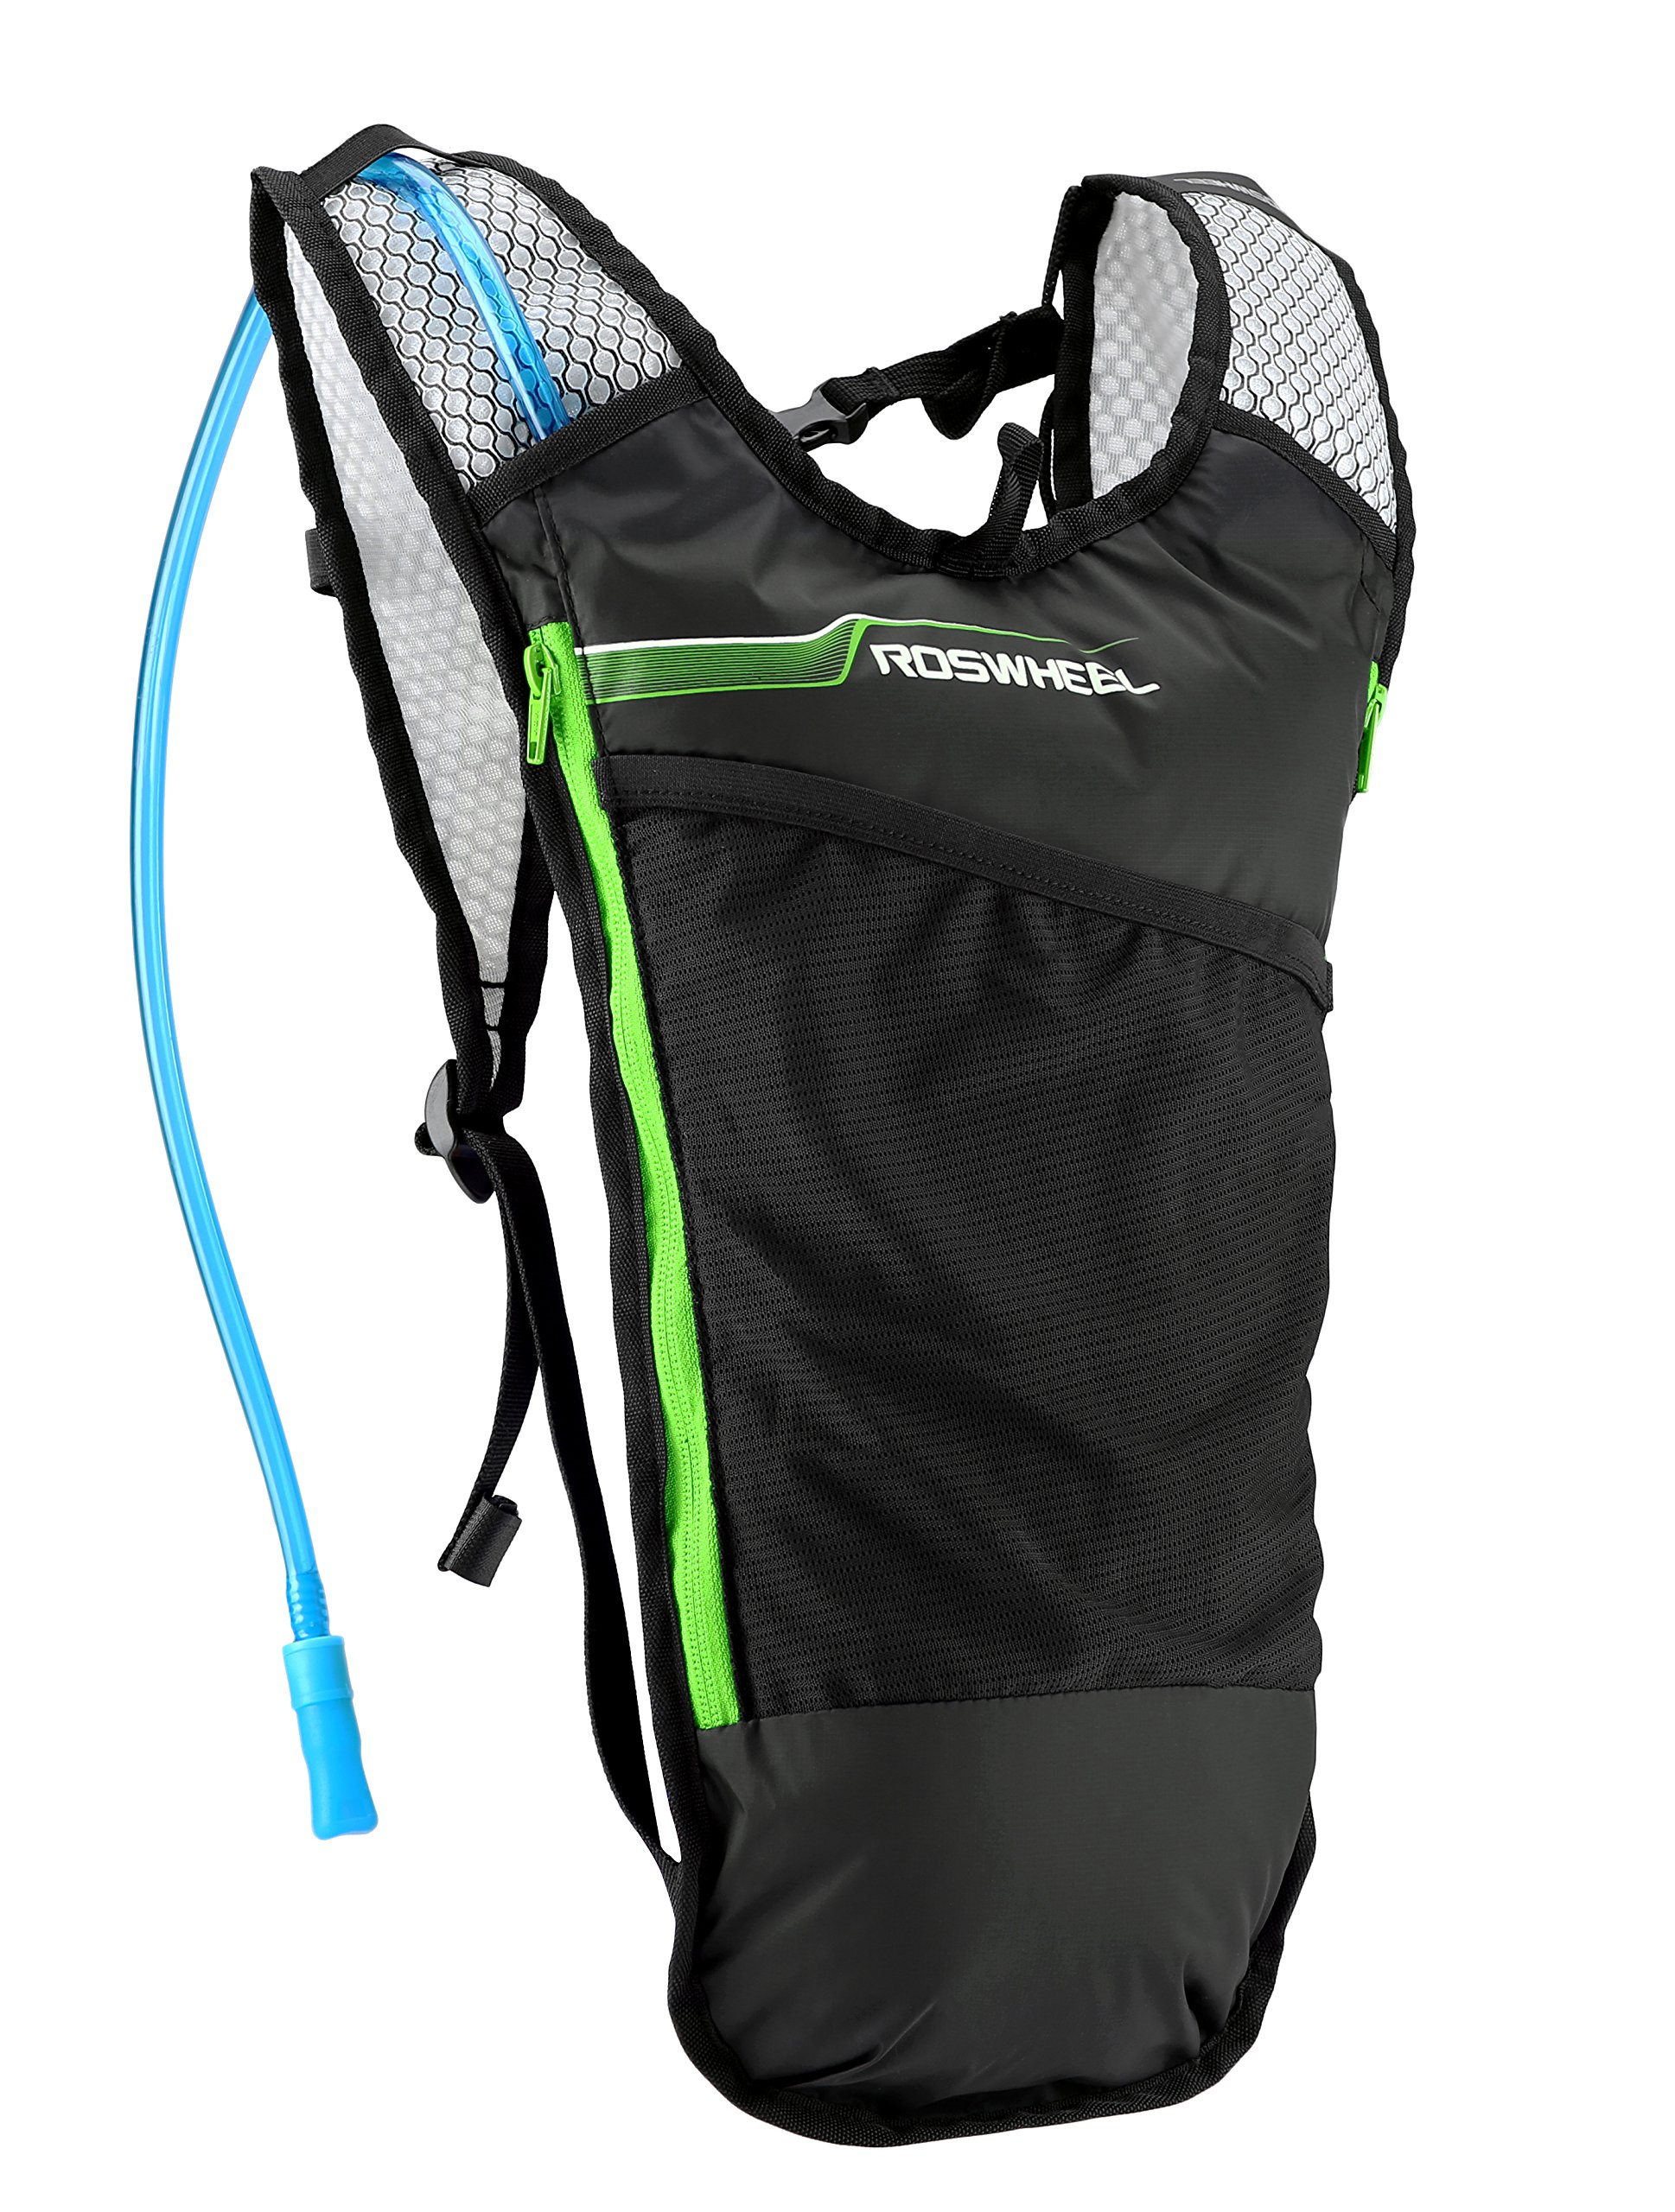 Roswheel 15937 Hydration Backpack with 2 L BPA Free Water Bladder, Green